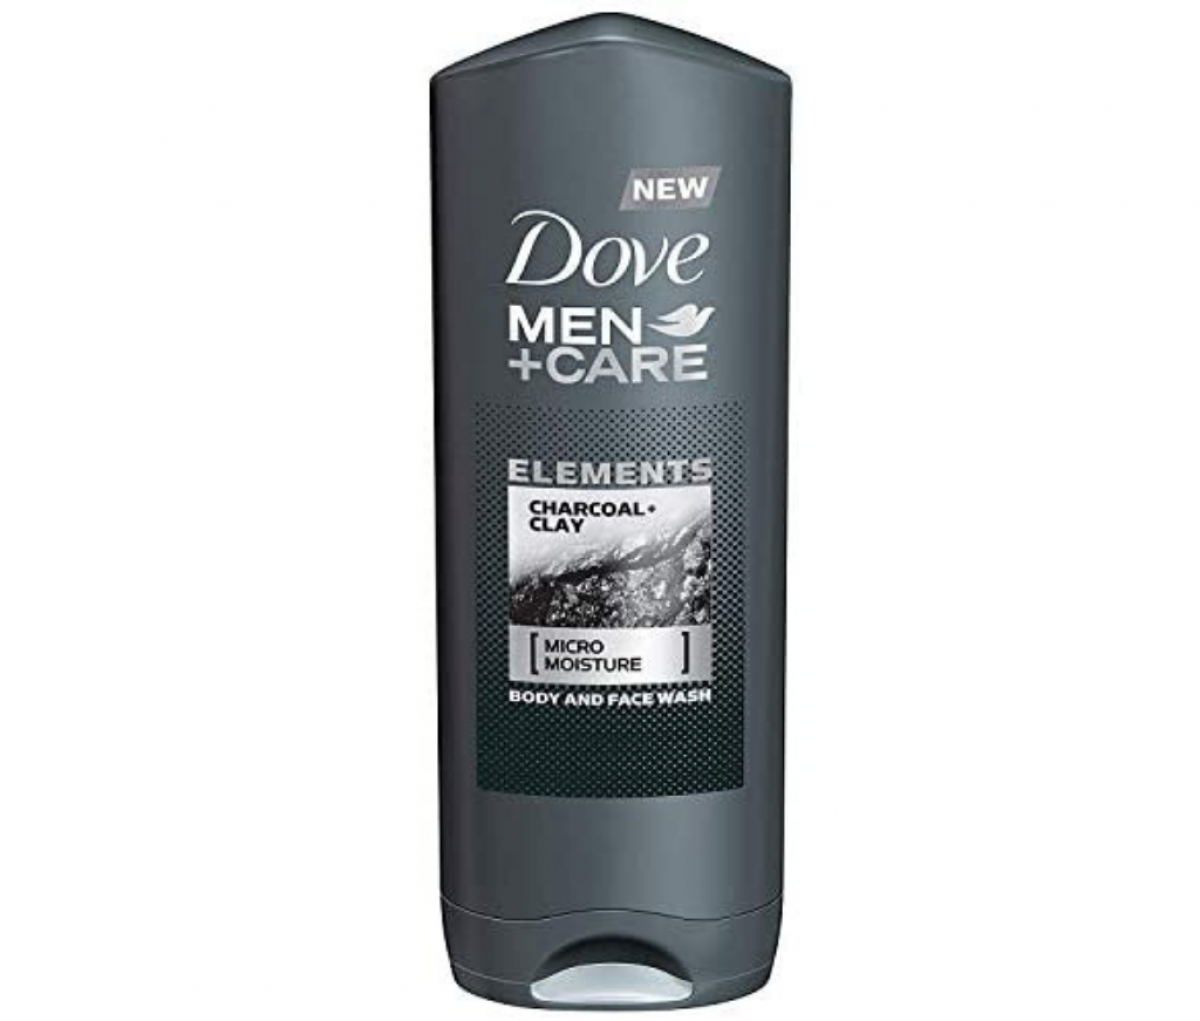 Dove 400ml 2in1 Charcoal+Clay Body & Face Wash